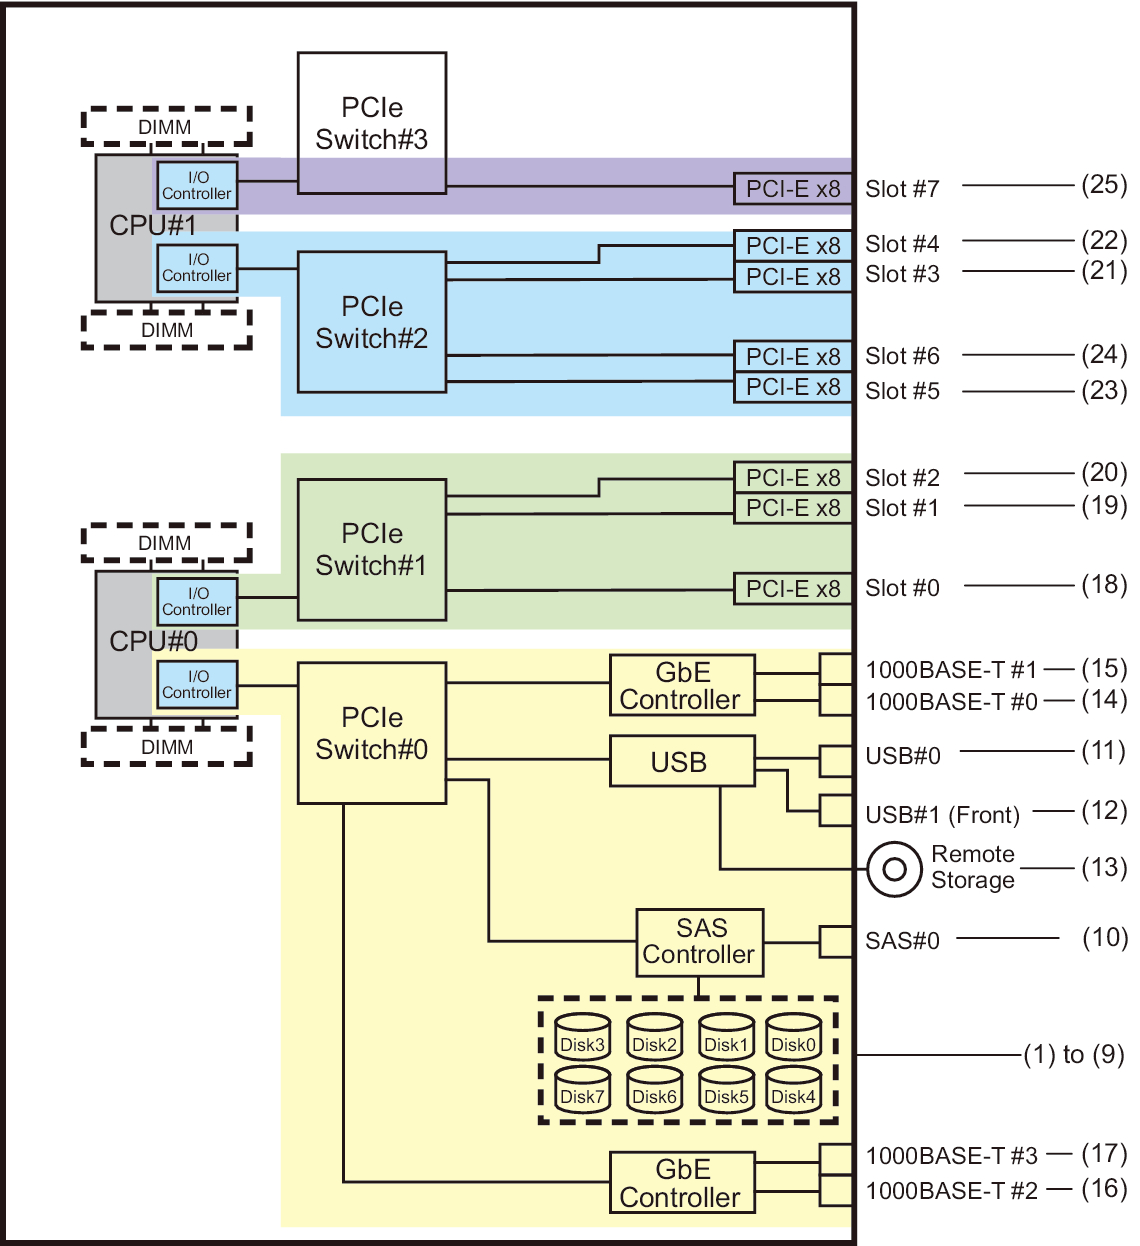 A61 For A 2 Cpu Configuration At The Initial Installation Time Sap 1 Block Diagram Figure 9 Sparc M10 4s Cpus